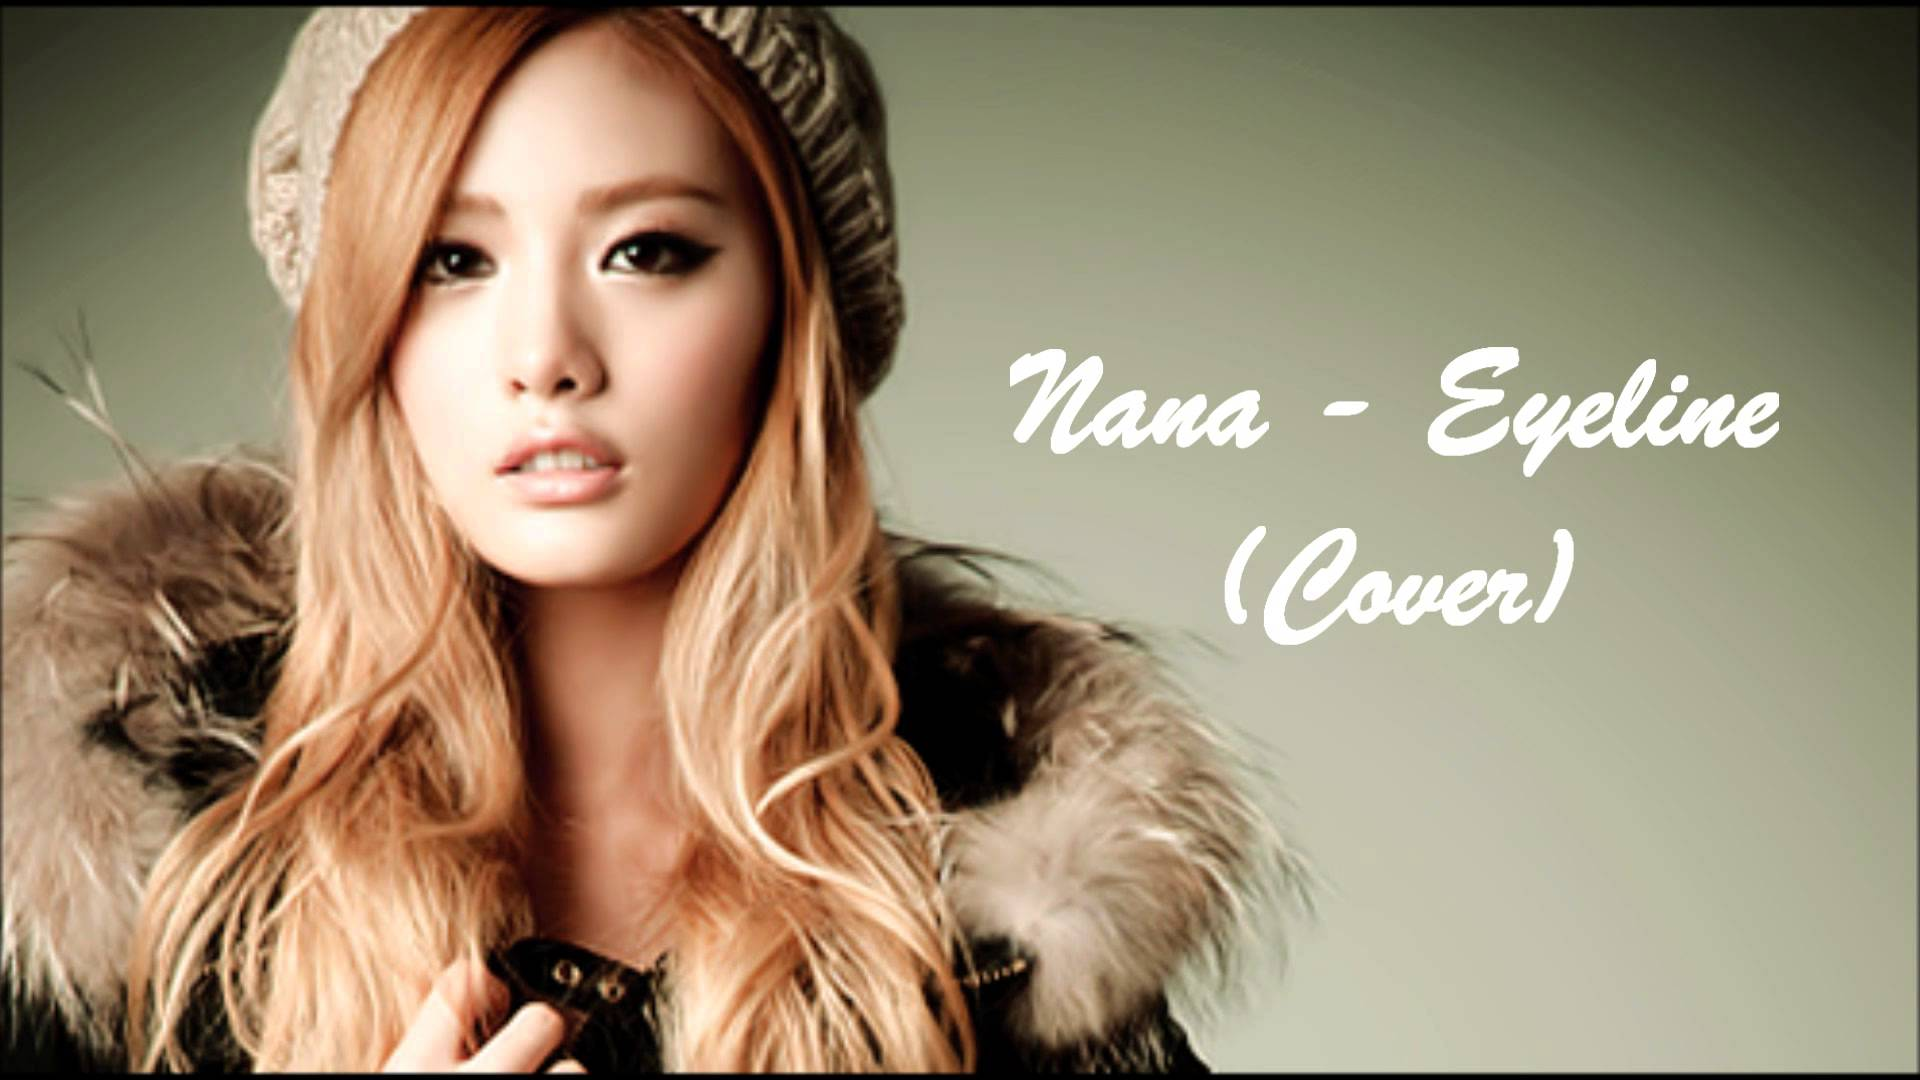 After School Nana Wallpapers 1920x1080